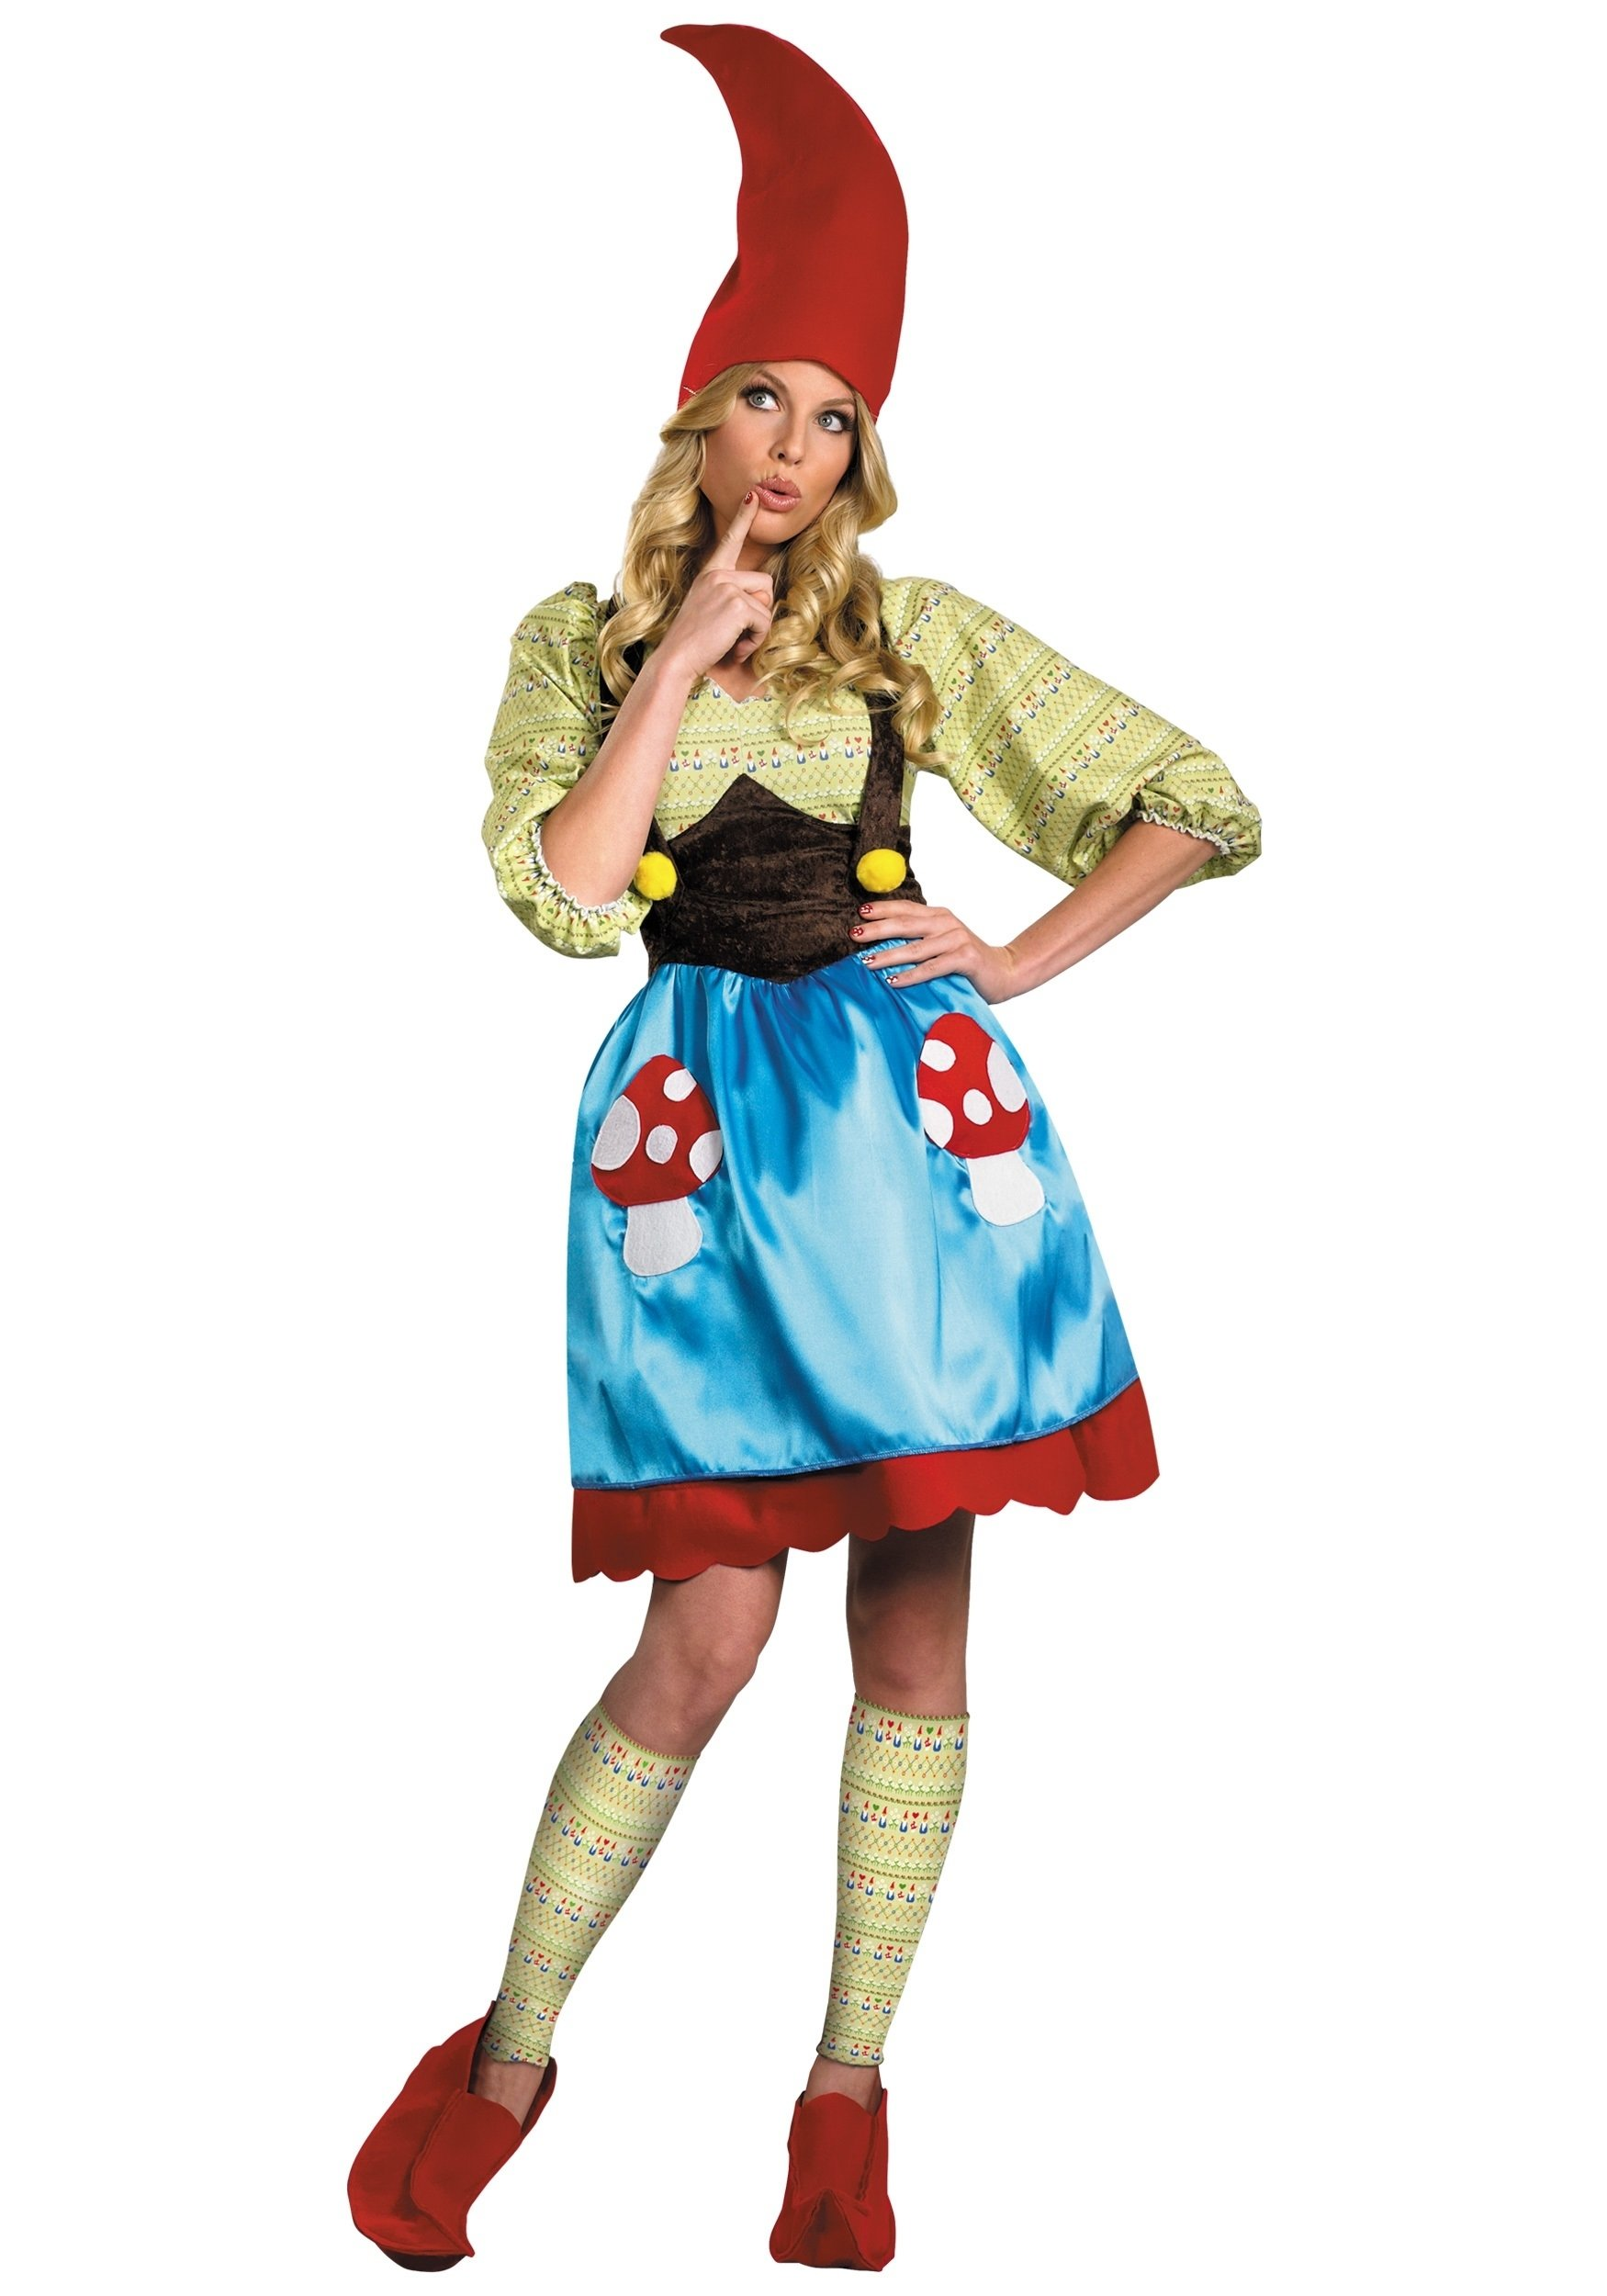 10 Famous Funny Costume Ideas For Women miss gnome costume funny halloween costume ideas women samorzady 2021